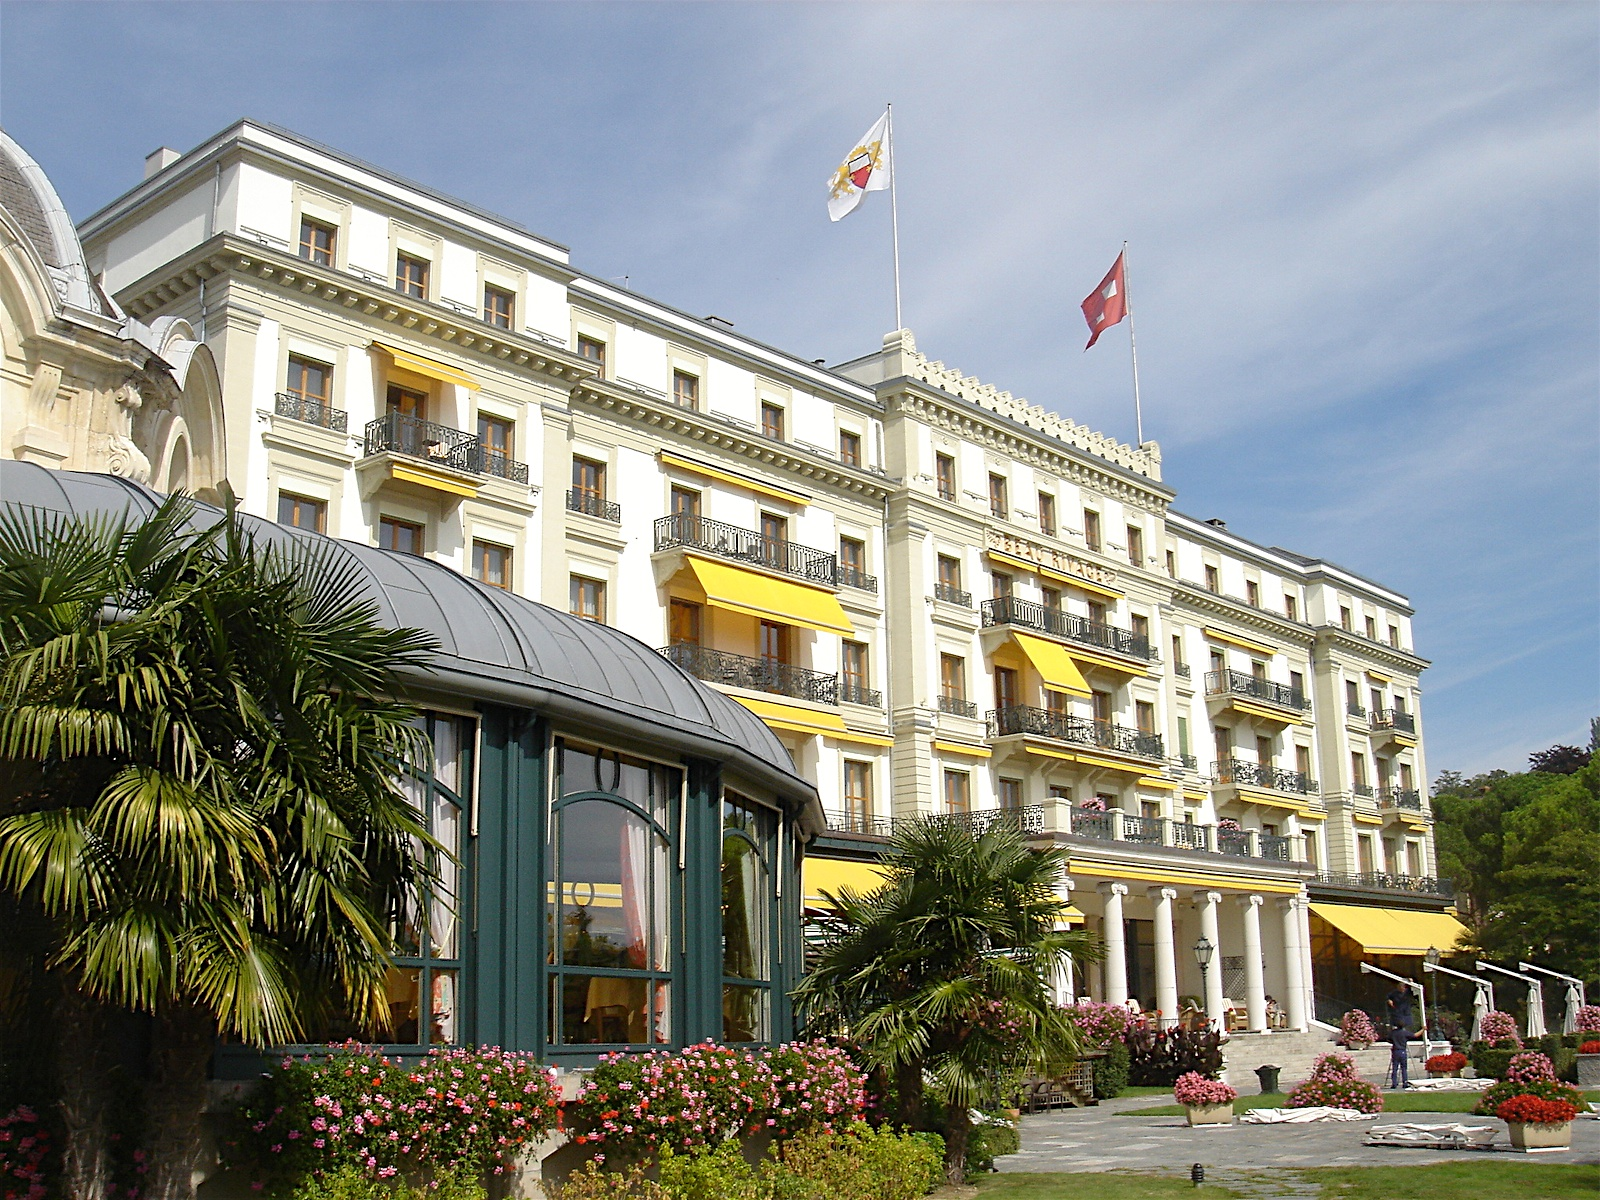 World Top Hotels Beau Rivage Palace Lausanne Switzerland